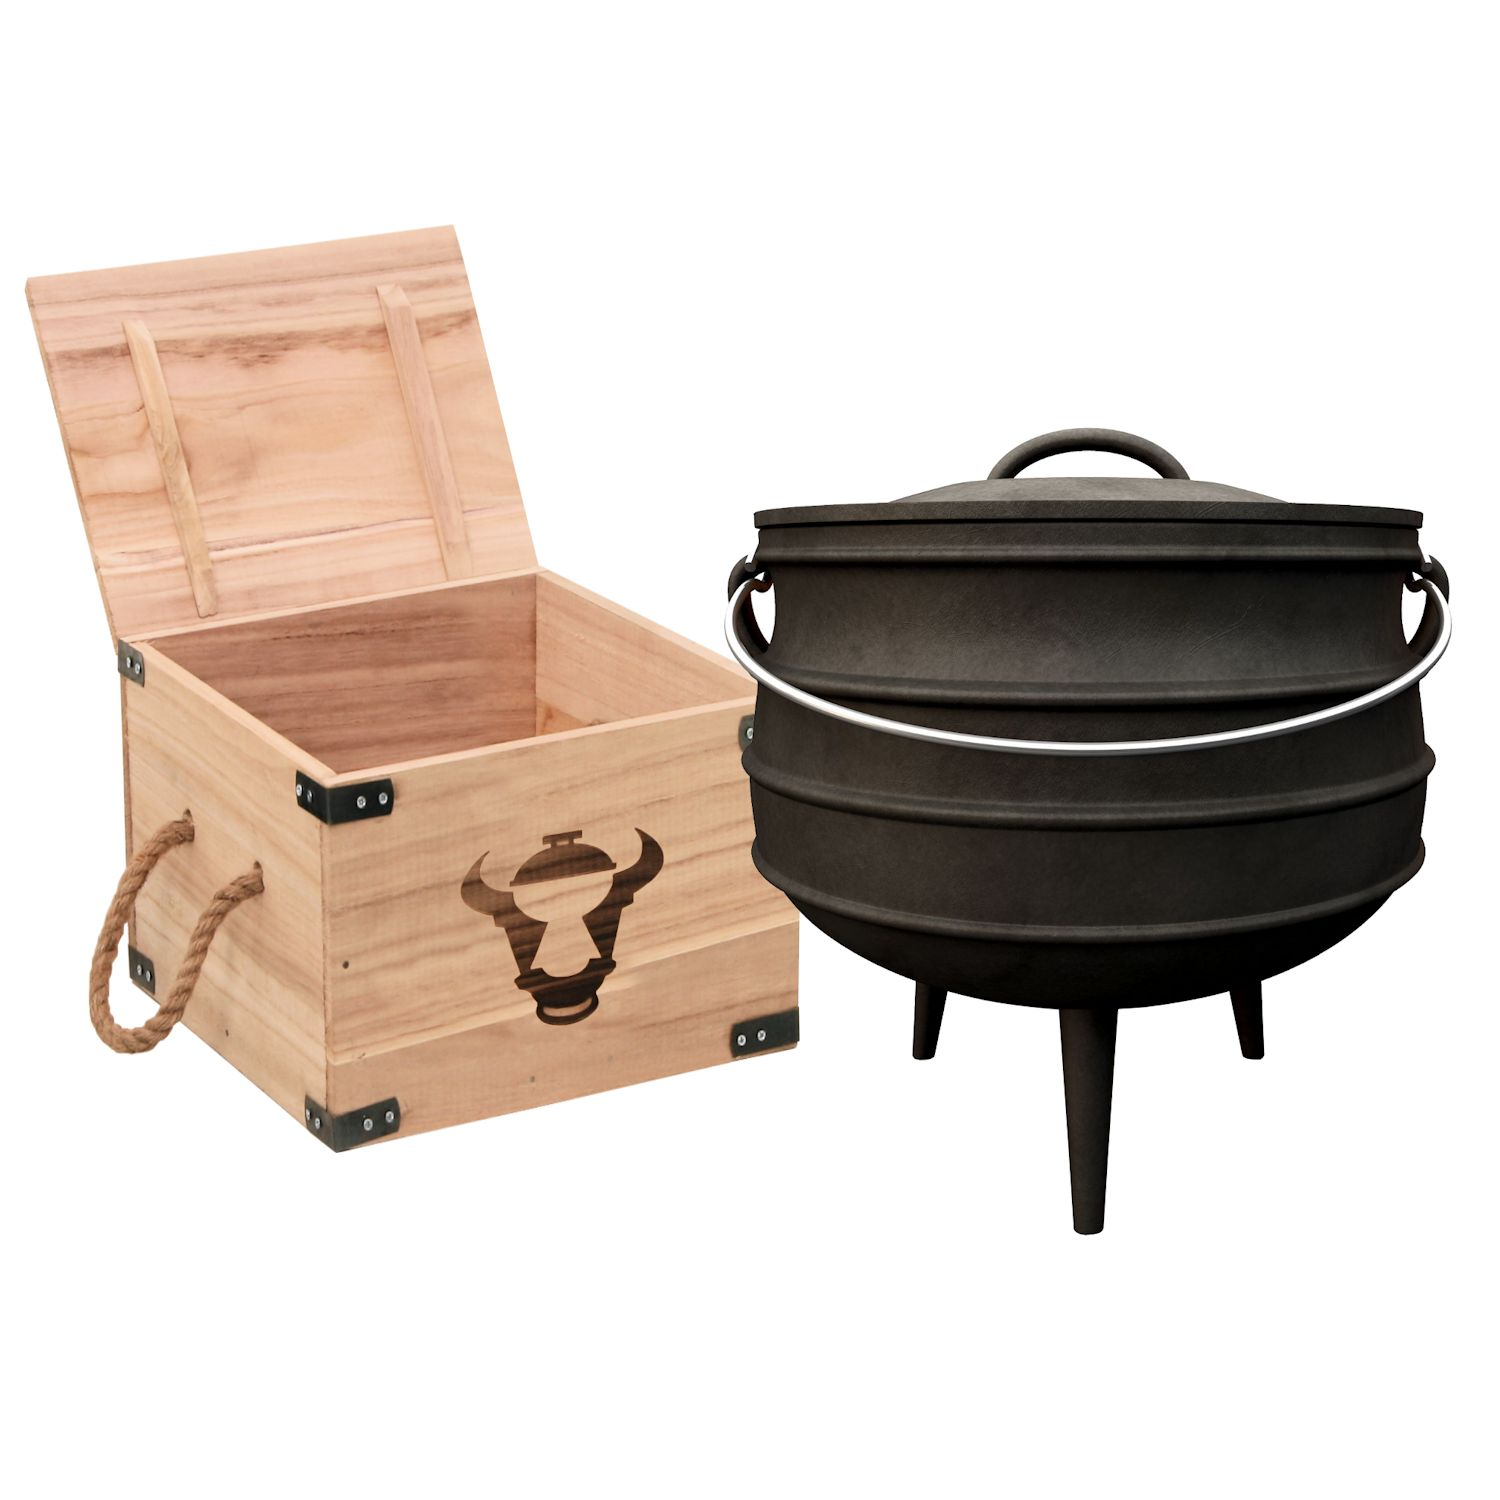 bbq toro dutch oven set in holzkiste mit stieltopf grillplatte grillhandschuhe ebay. Black Bedroom Furniture Sets. Home Design Ideas